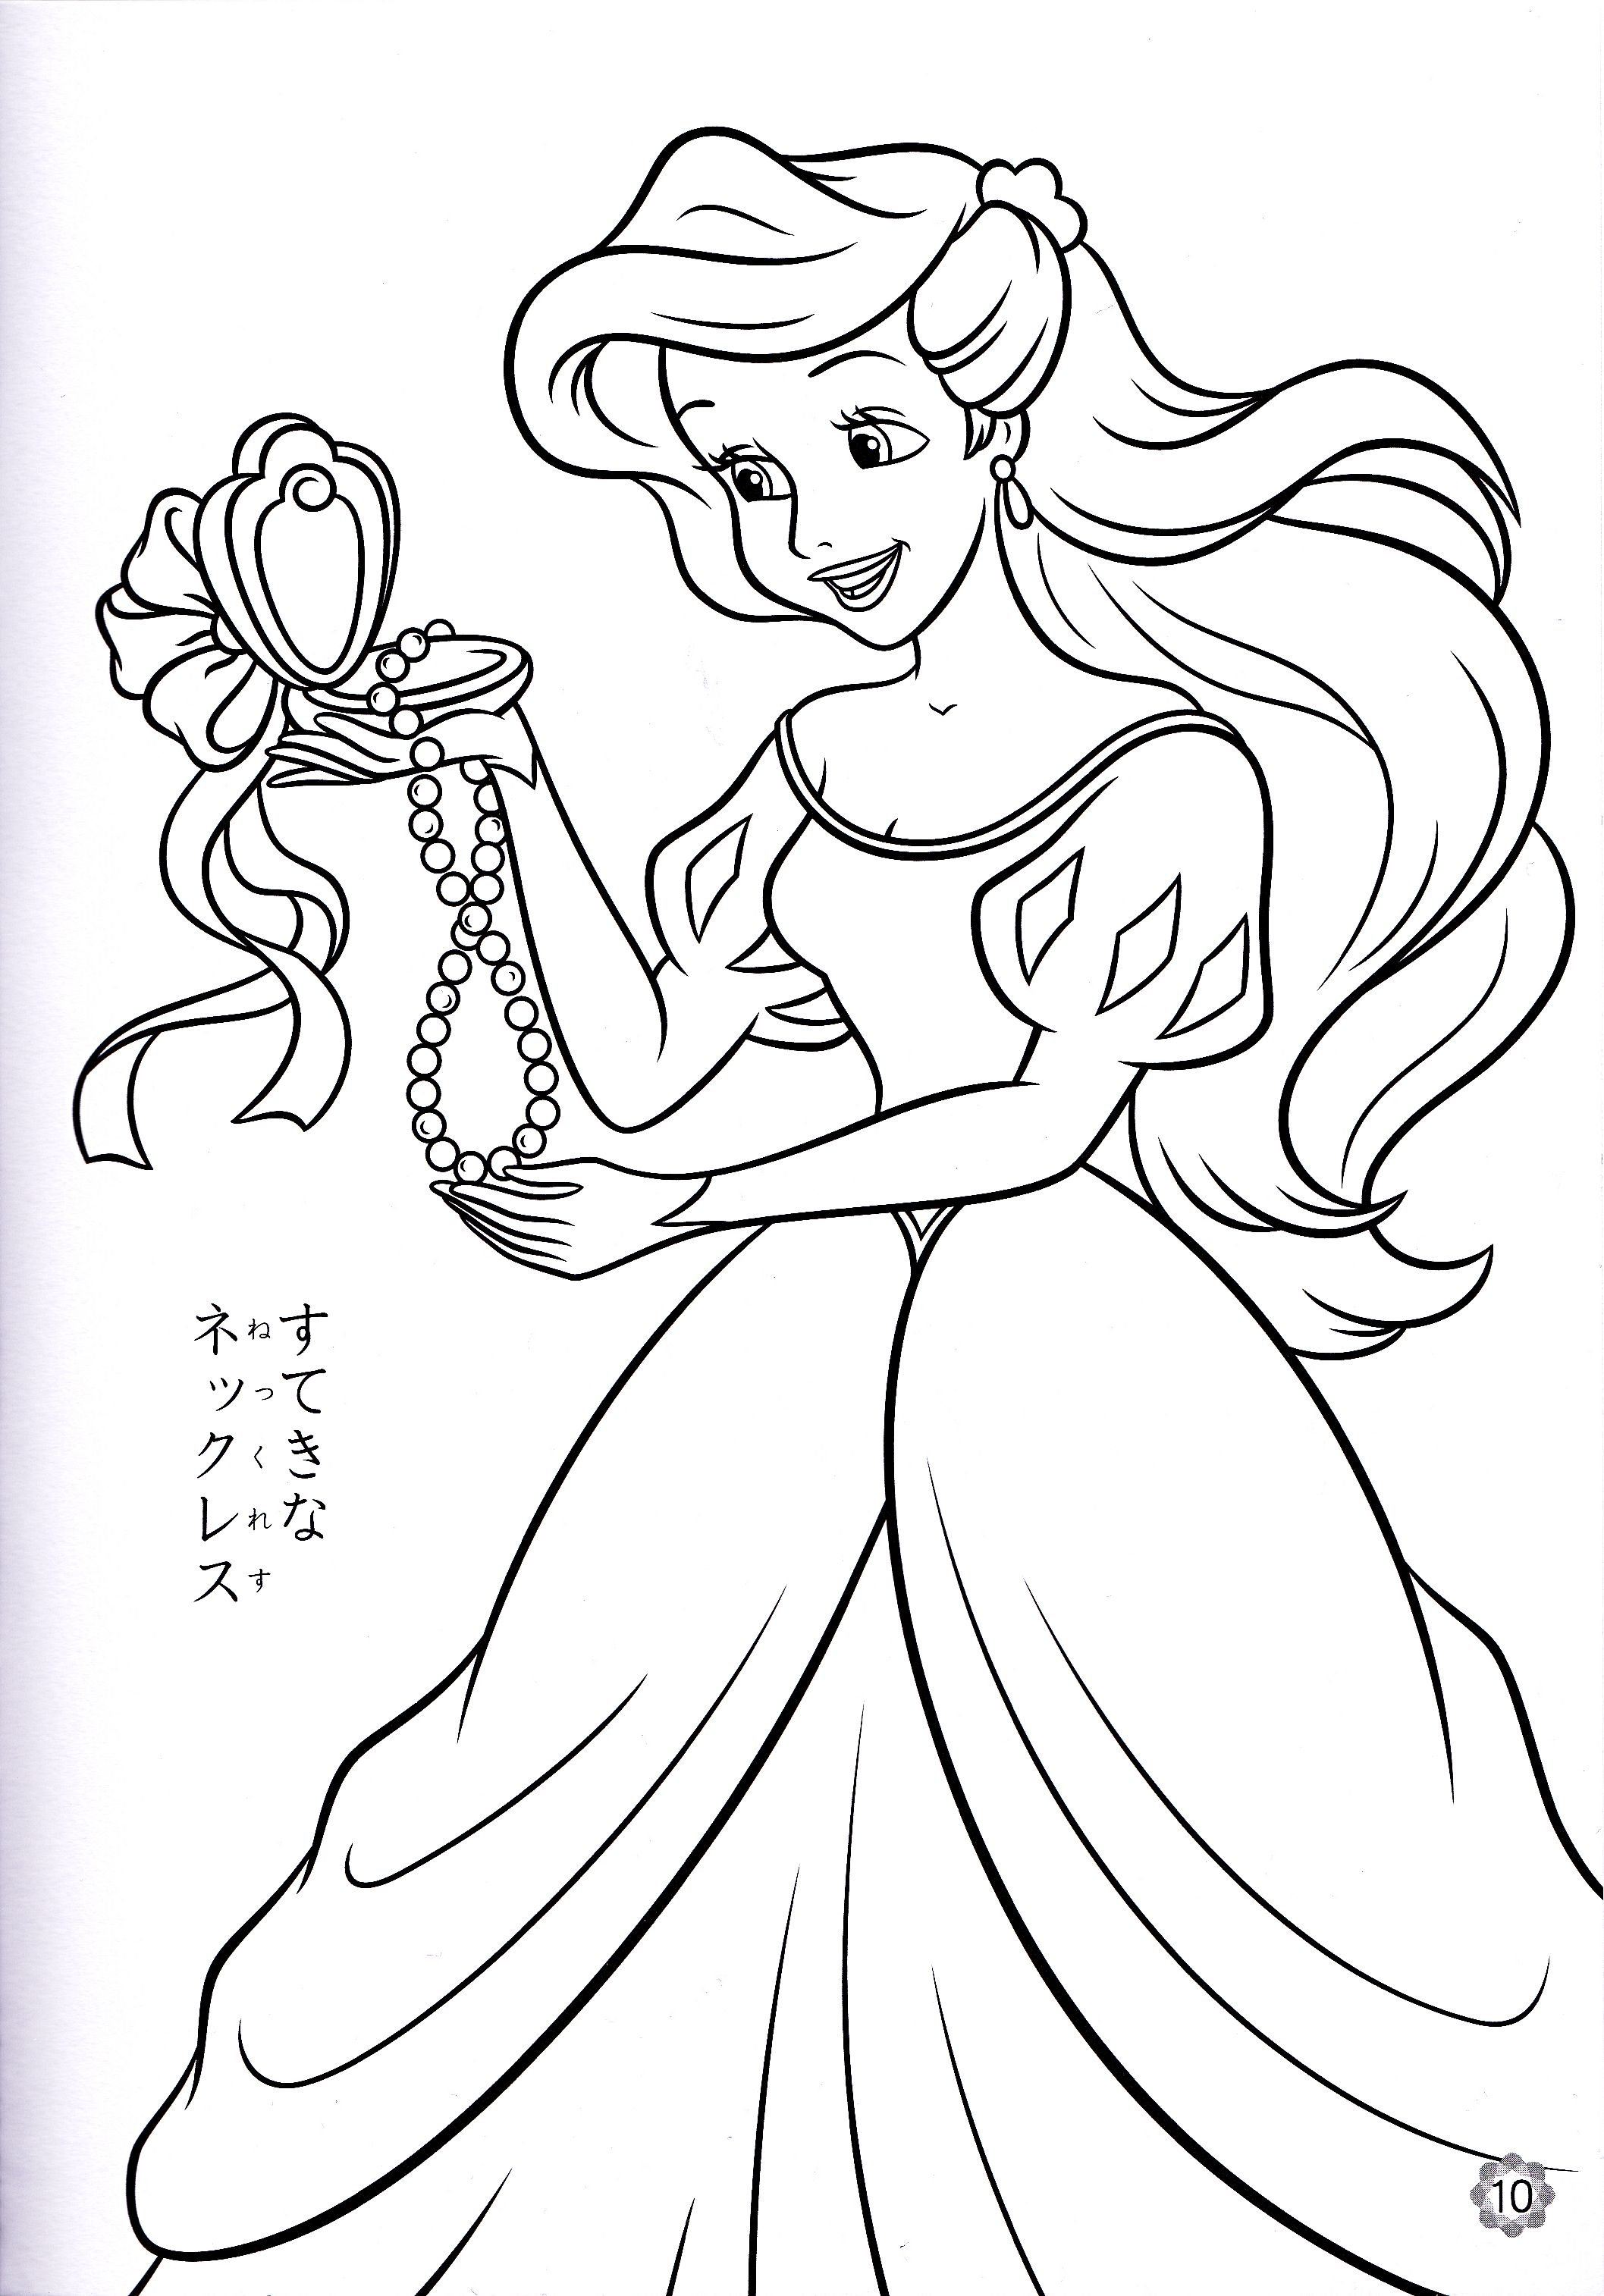 Coloring book disney princess - Disney Princess Coloring Pages Parents Are Always Looking For Ways To Make Their Kids Happy And Develop Their Creativity Disney Princess Coloring Pages Can